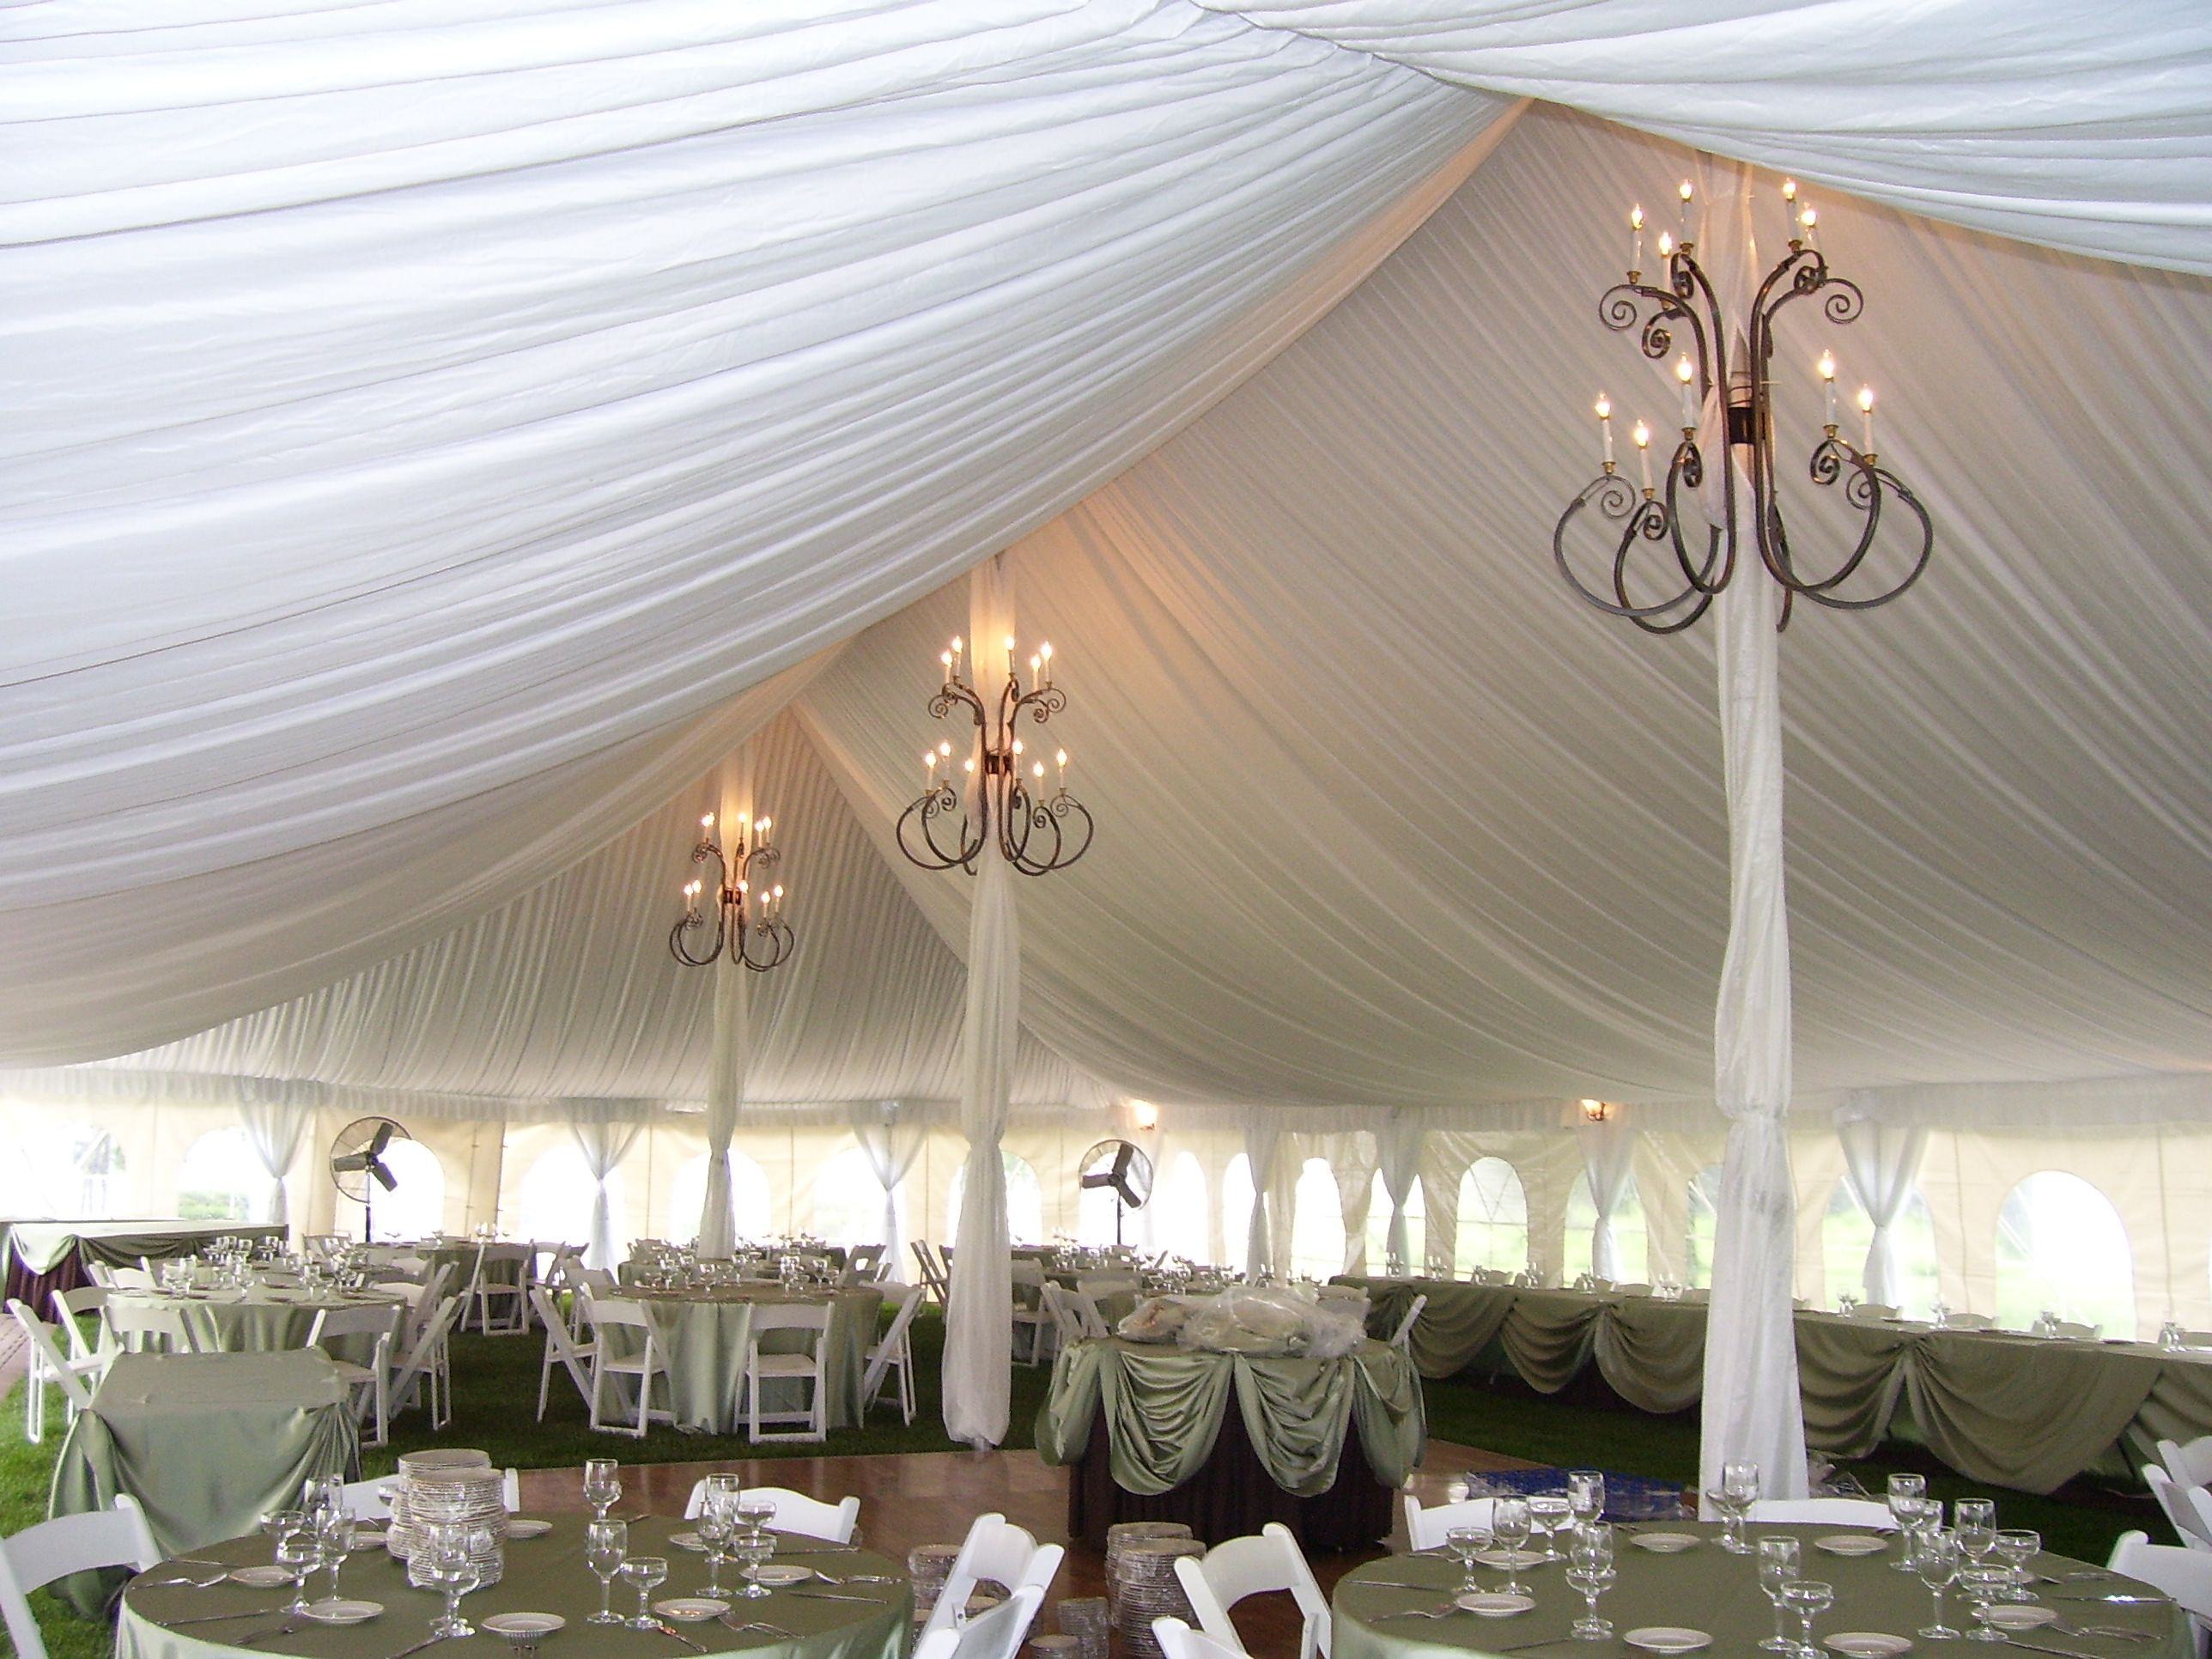 view our catalog by clicking one of the categories below frame tents pole tents chairs tables linens dance floorstaging bbq grills concessions lighting bbq wedding tent